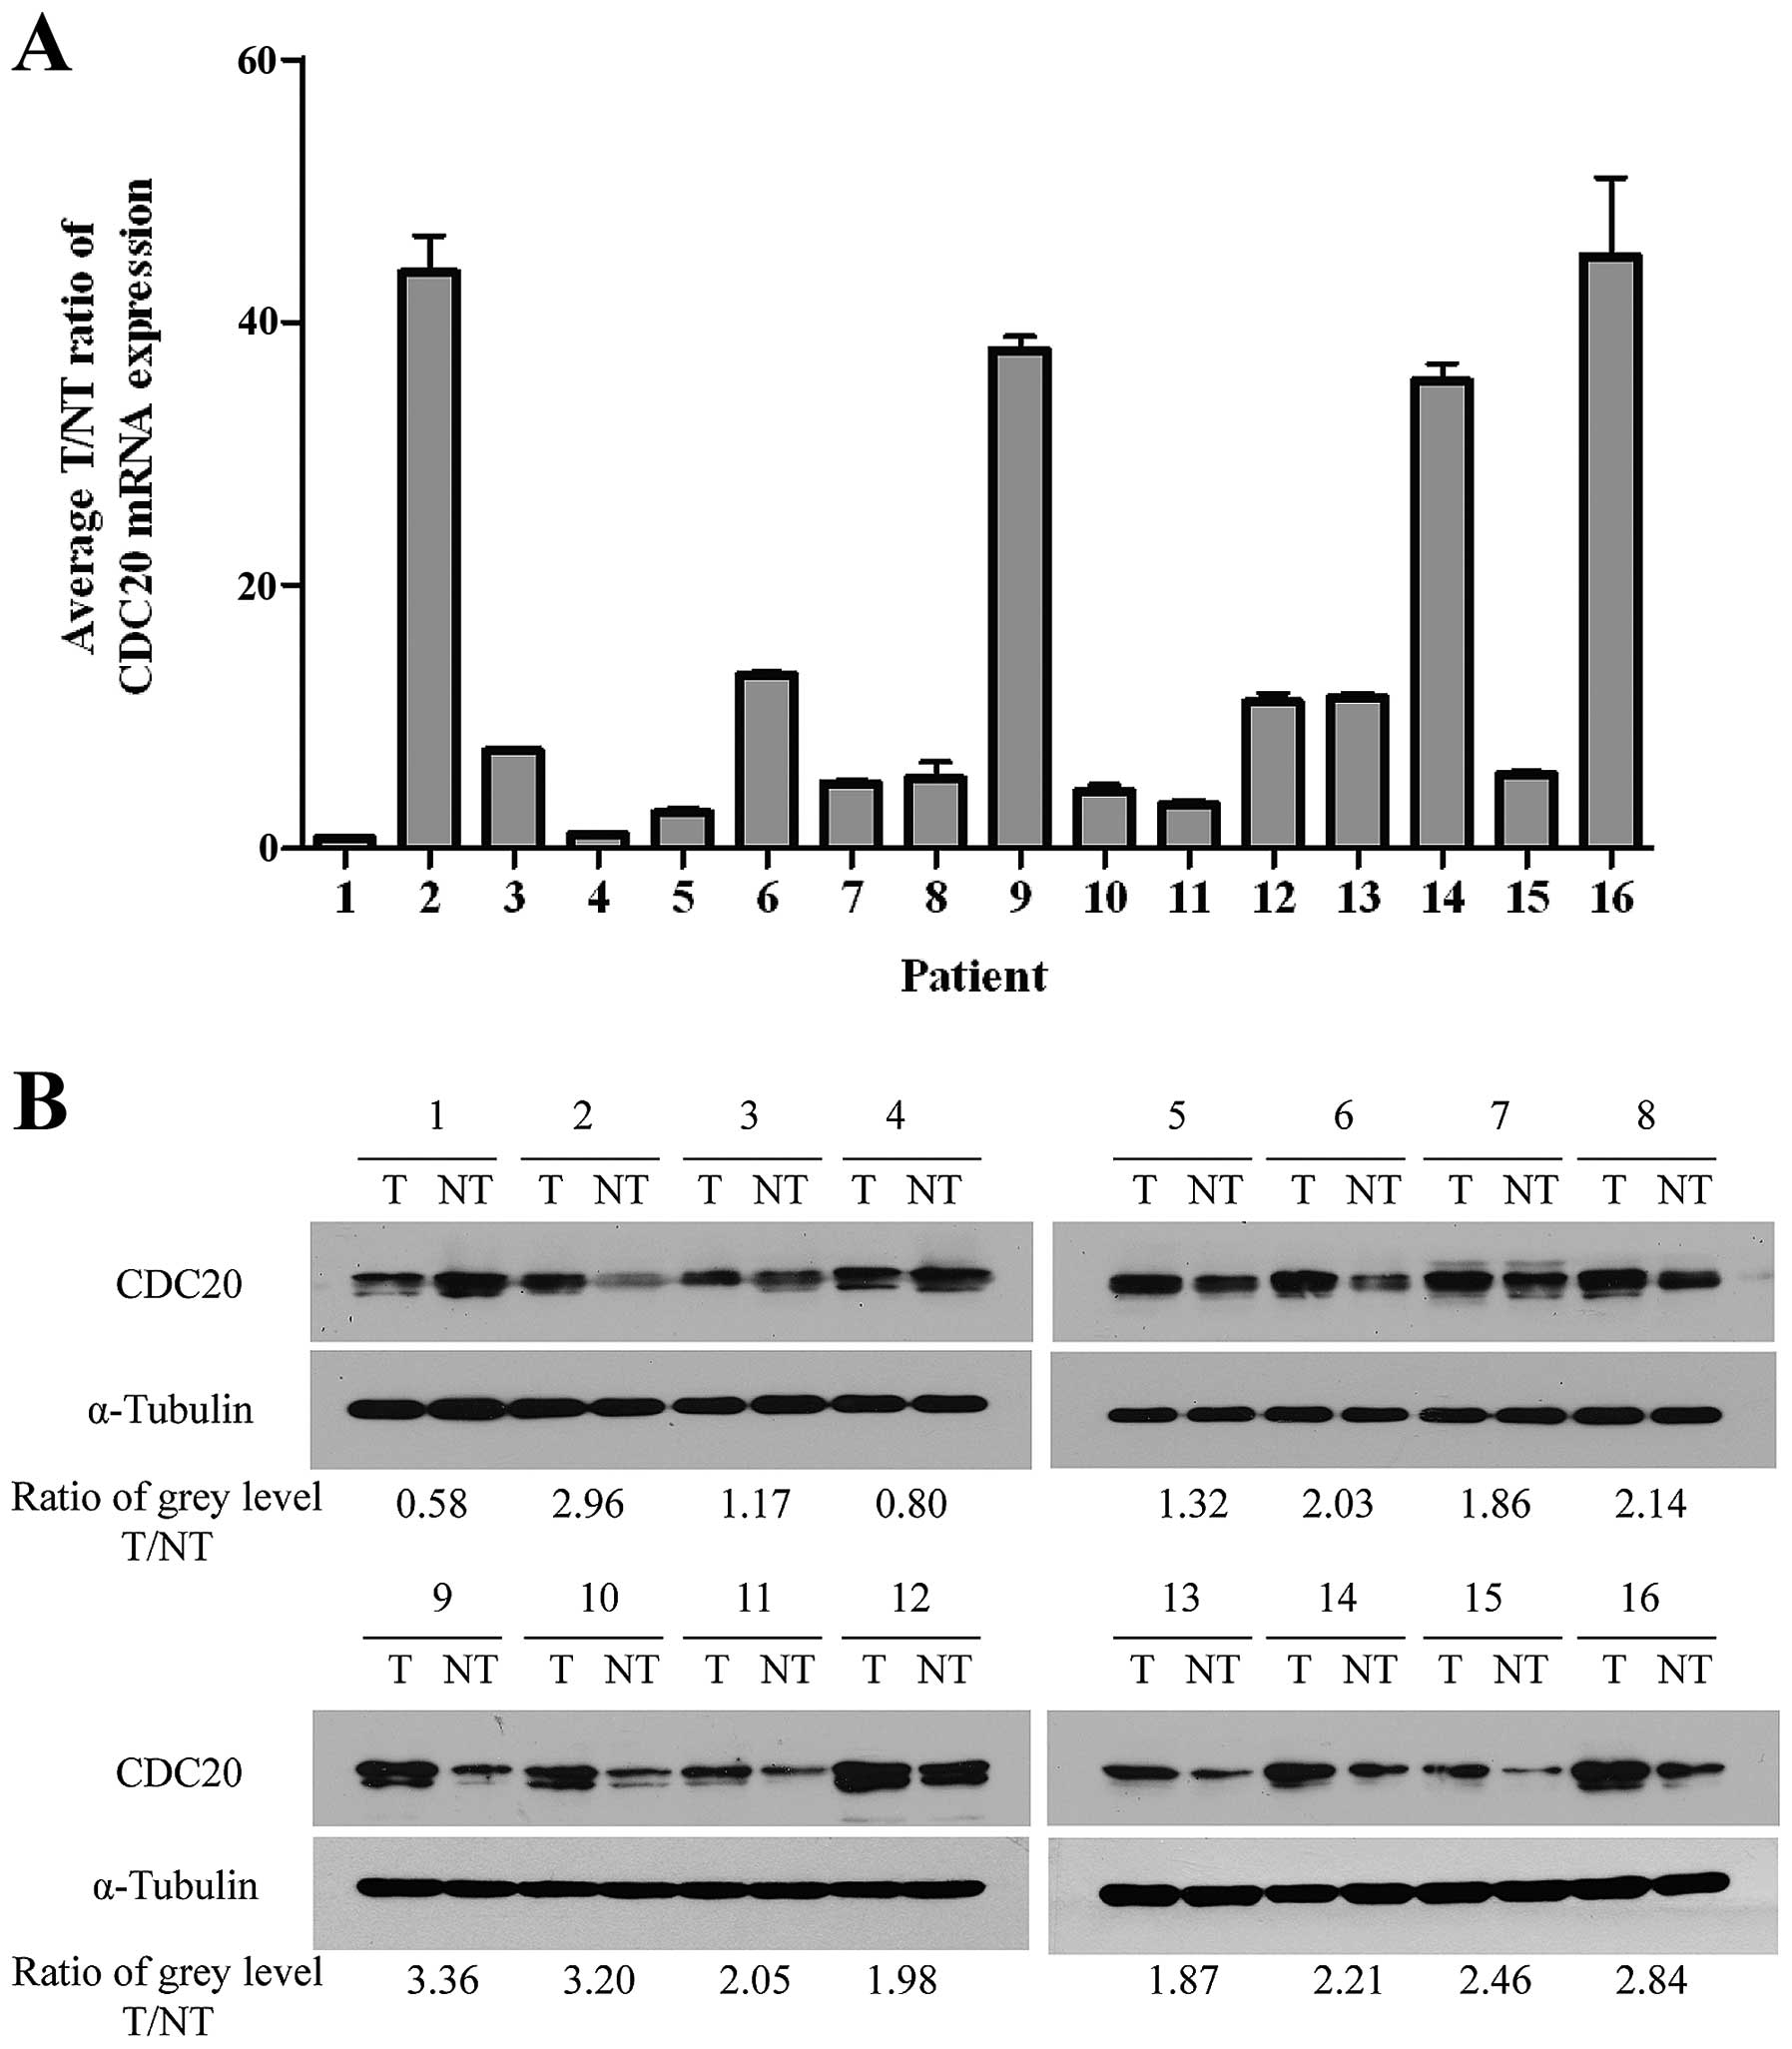 Increased CDC20 expression is associated with development and